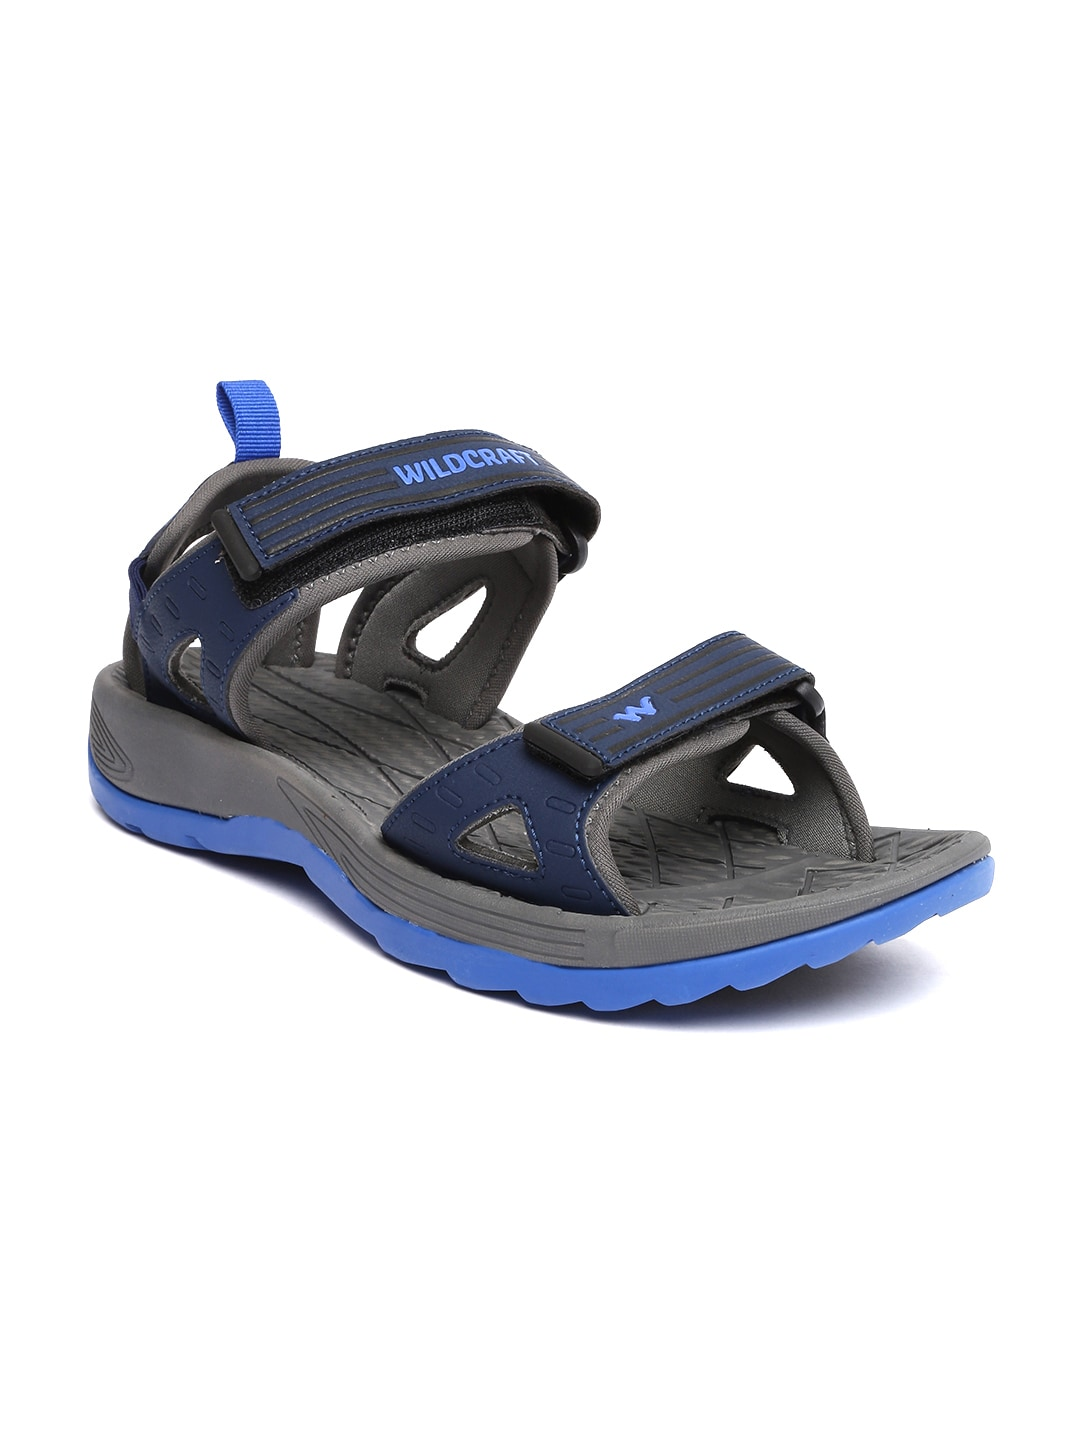 1386bcea09eb Men s Sports Sandals - Buy Sports Sandals for Men Online in India